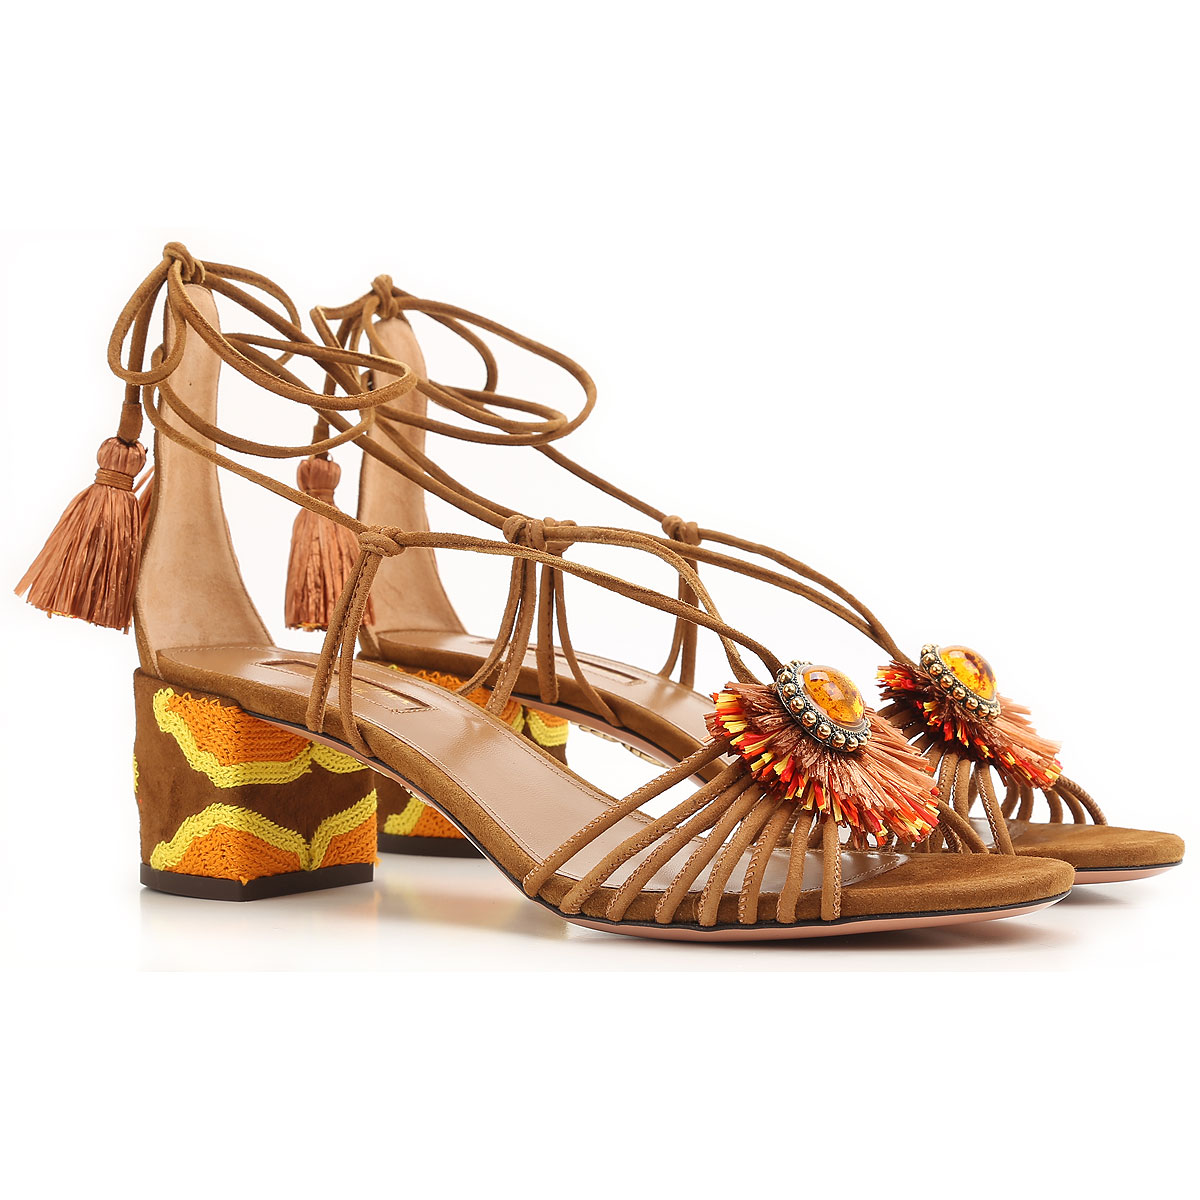 Aquazzura Sandals for Women On Sale in Outlet, Brown, Leather, 2019, 6.5